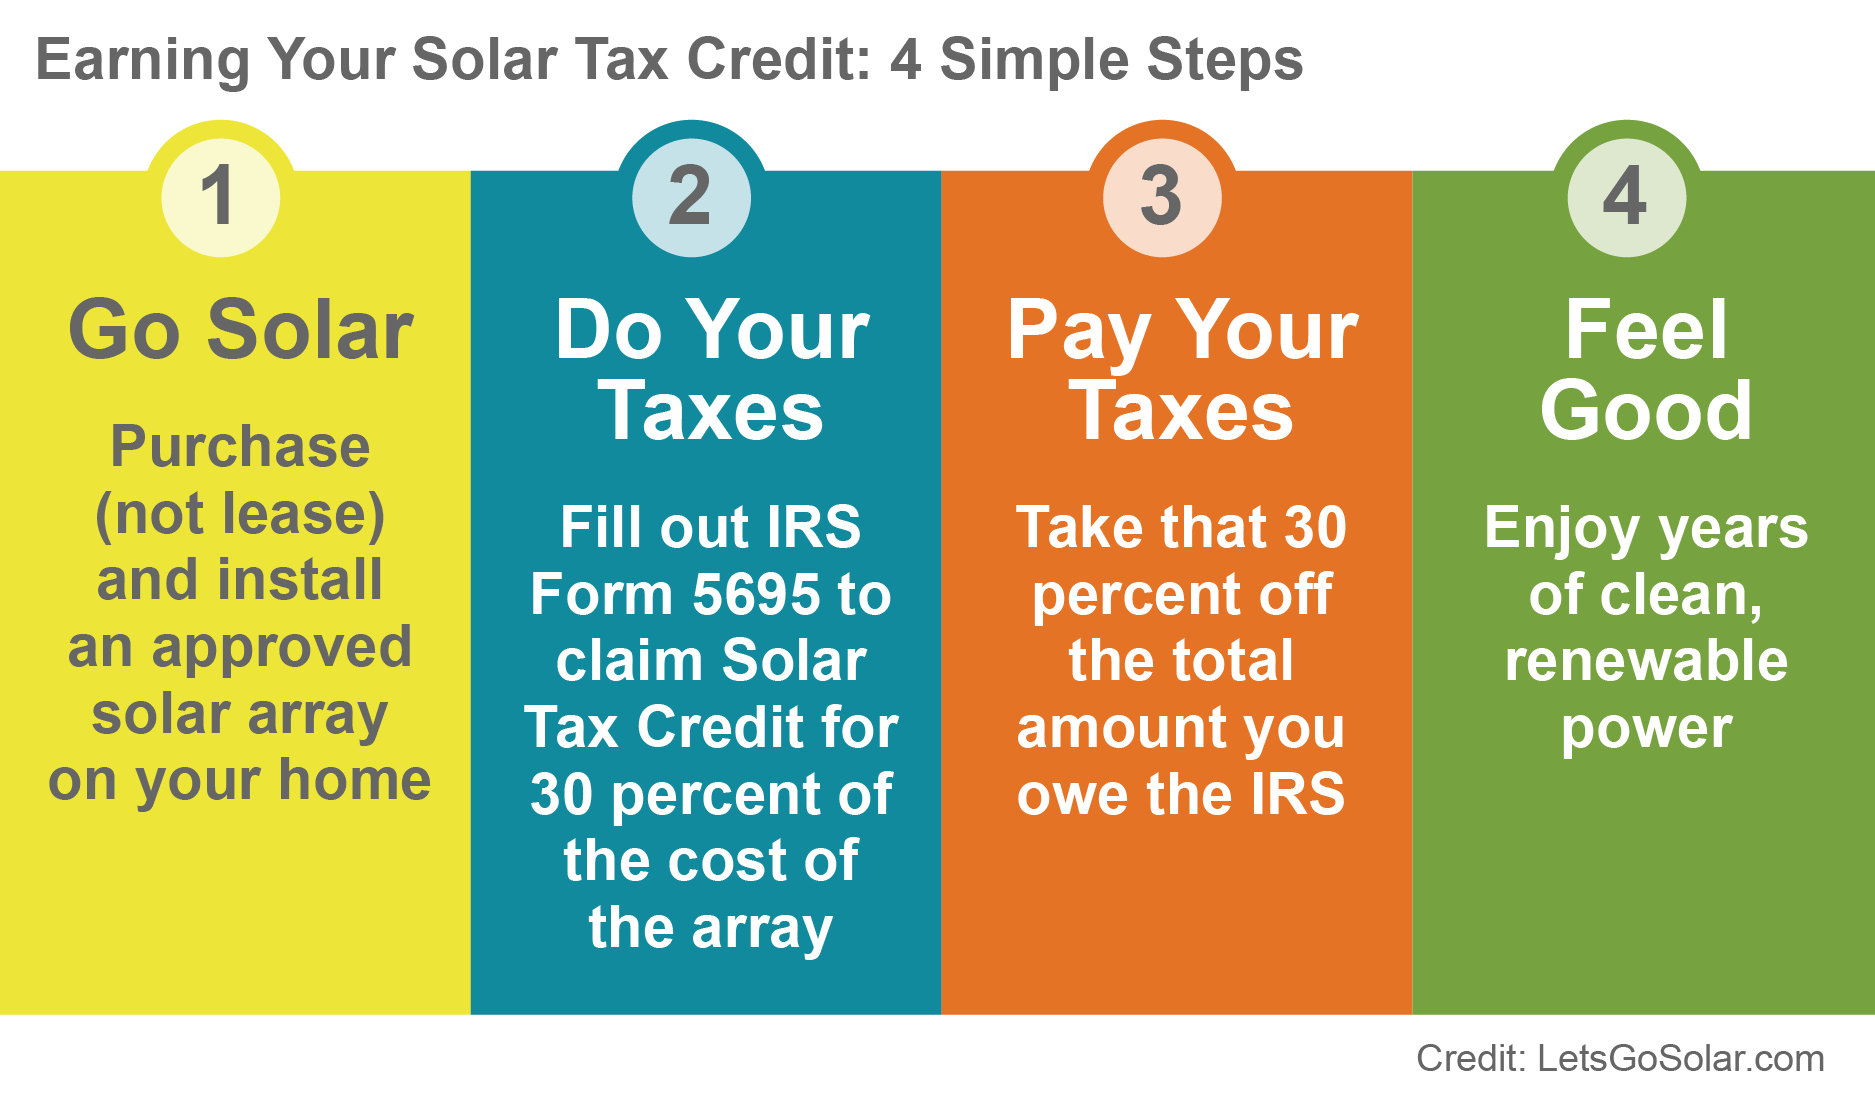 Four steps to earning your solar tax credit